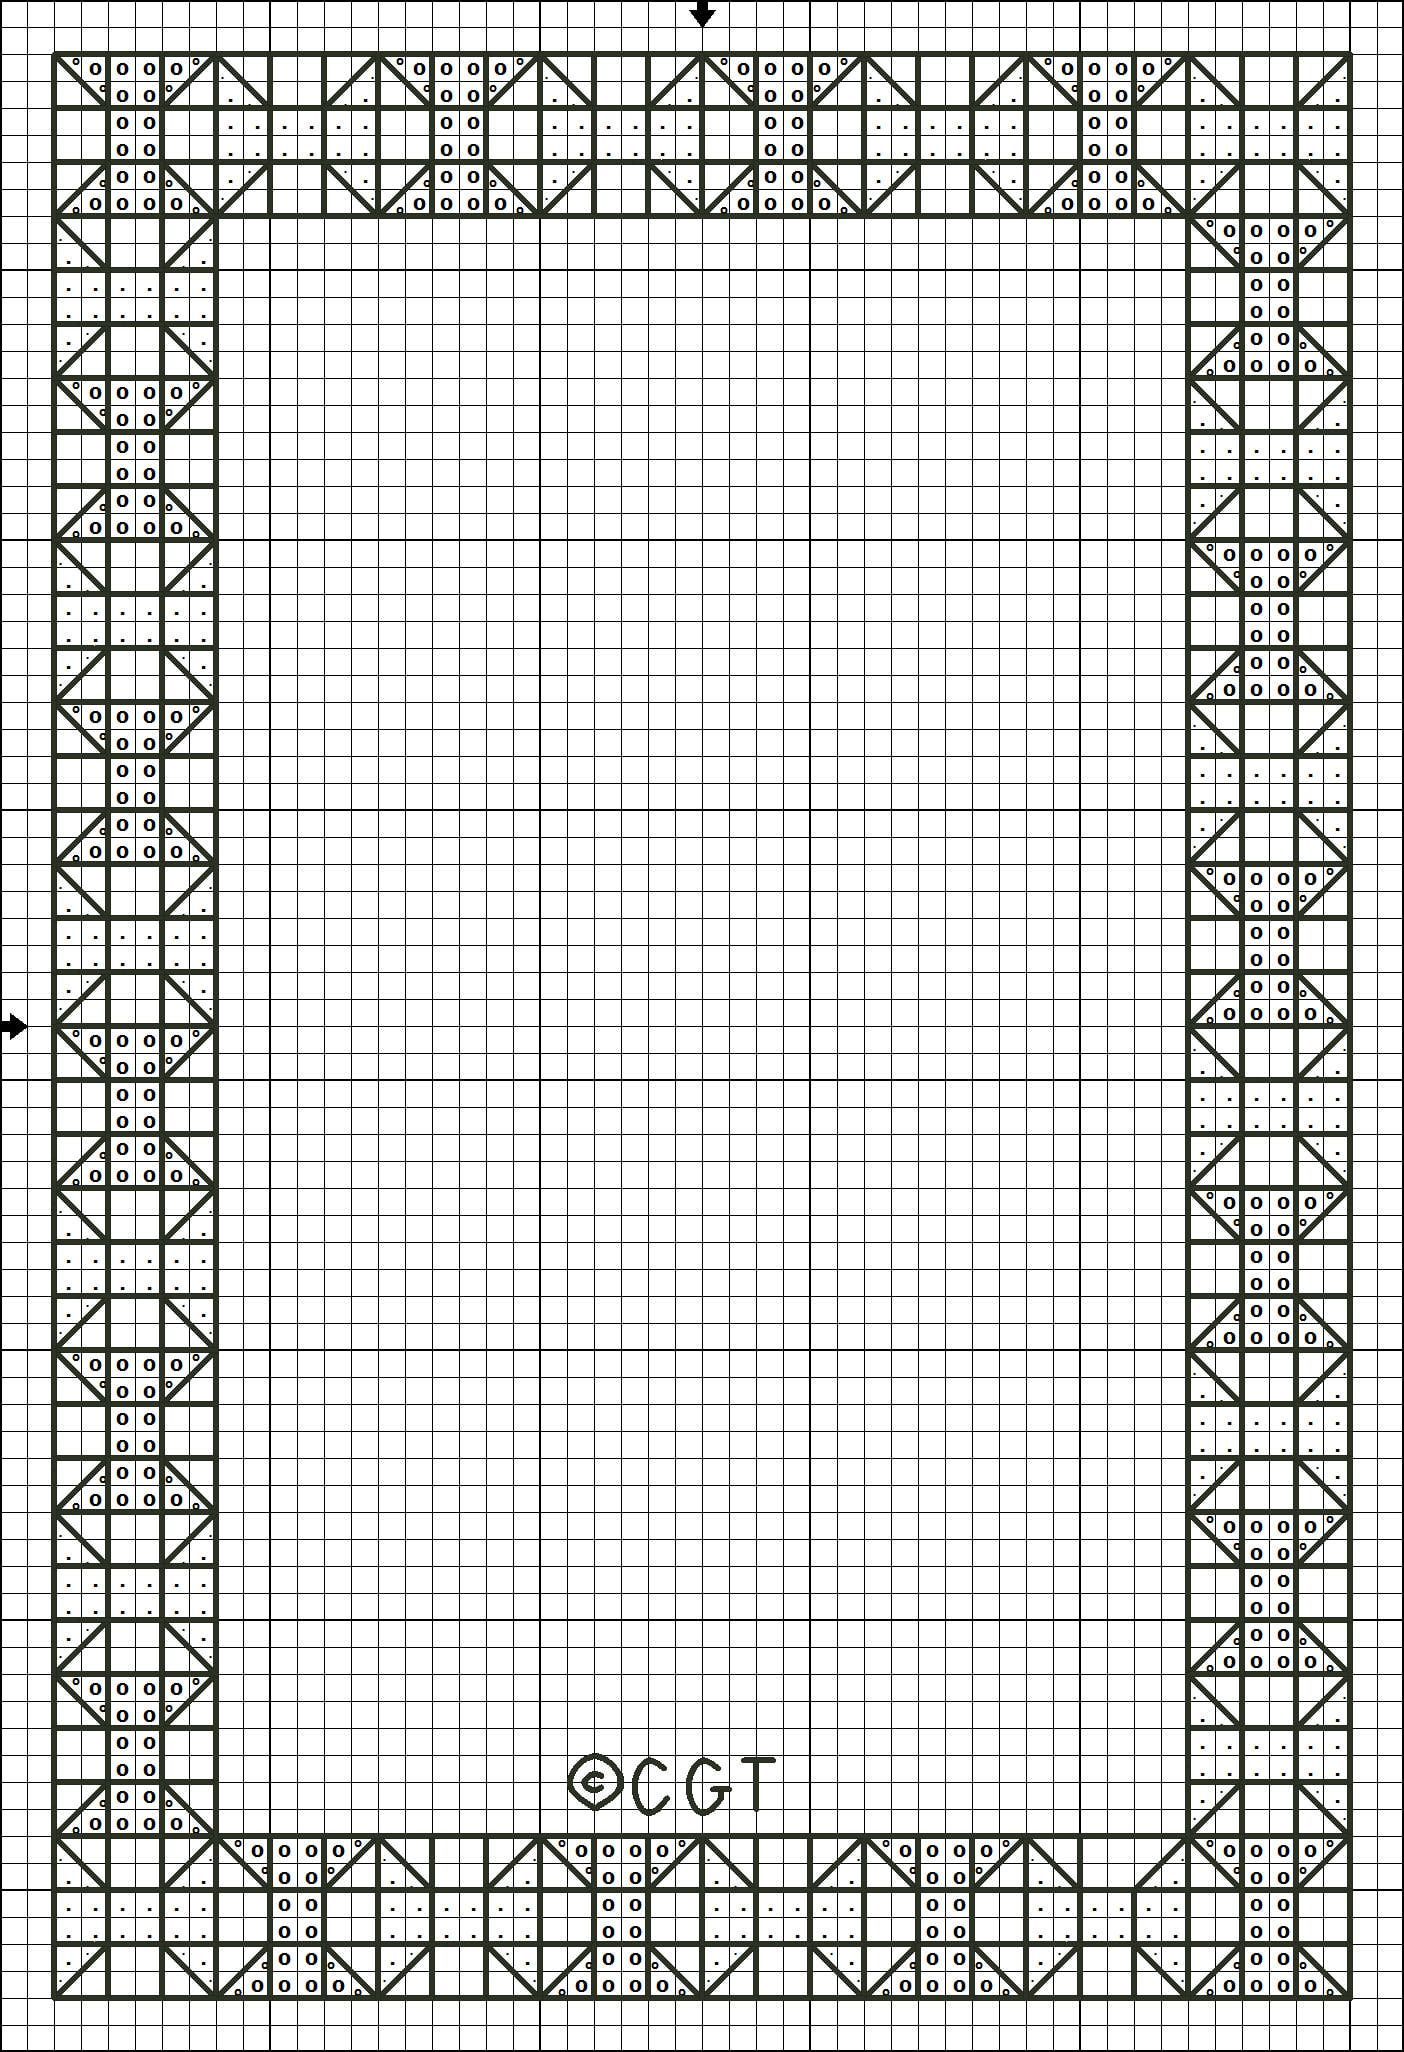 Free Printable Cross Stitch Patterns |  Cross Stitch Border - Free Printable Cross Patterns